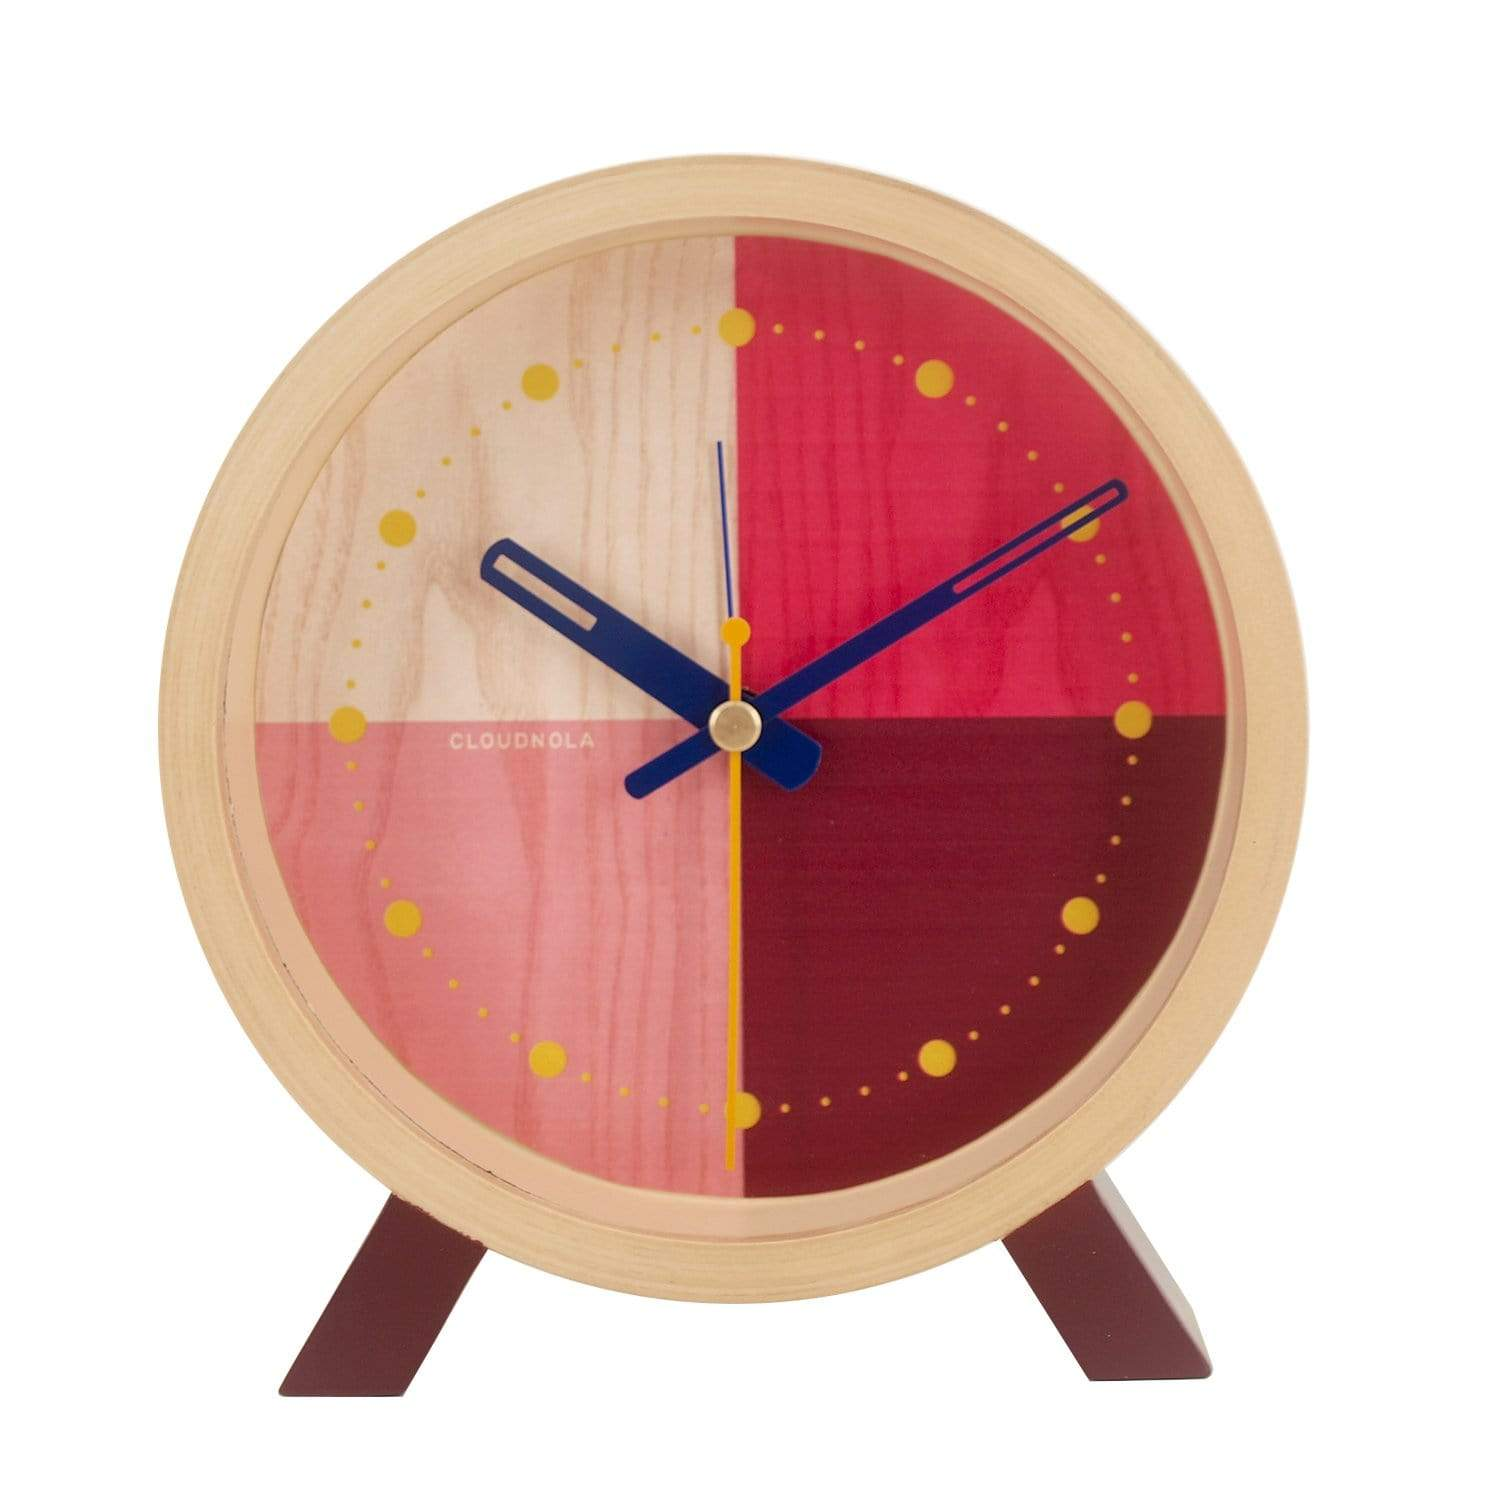 cloudnola Desk Clock Flor Red Desk Clock